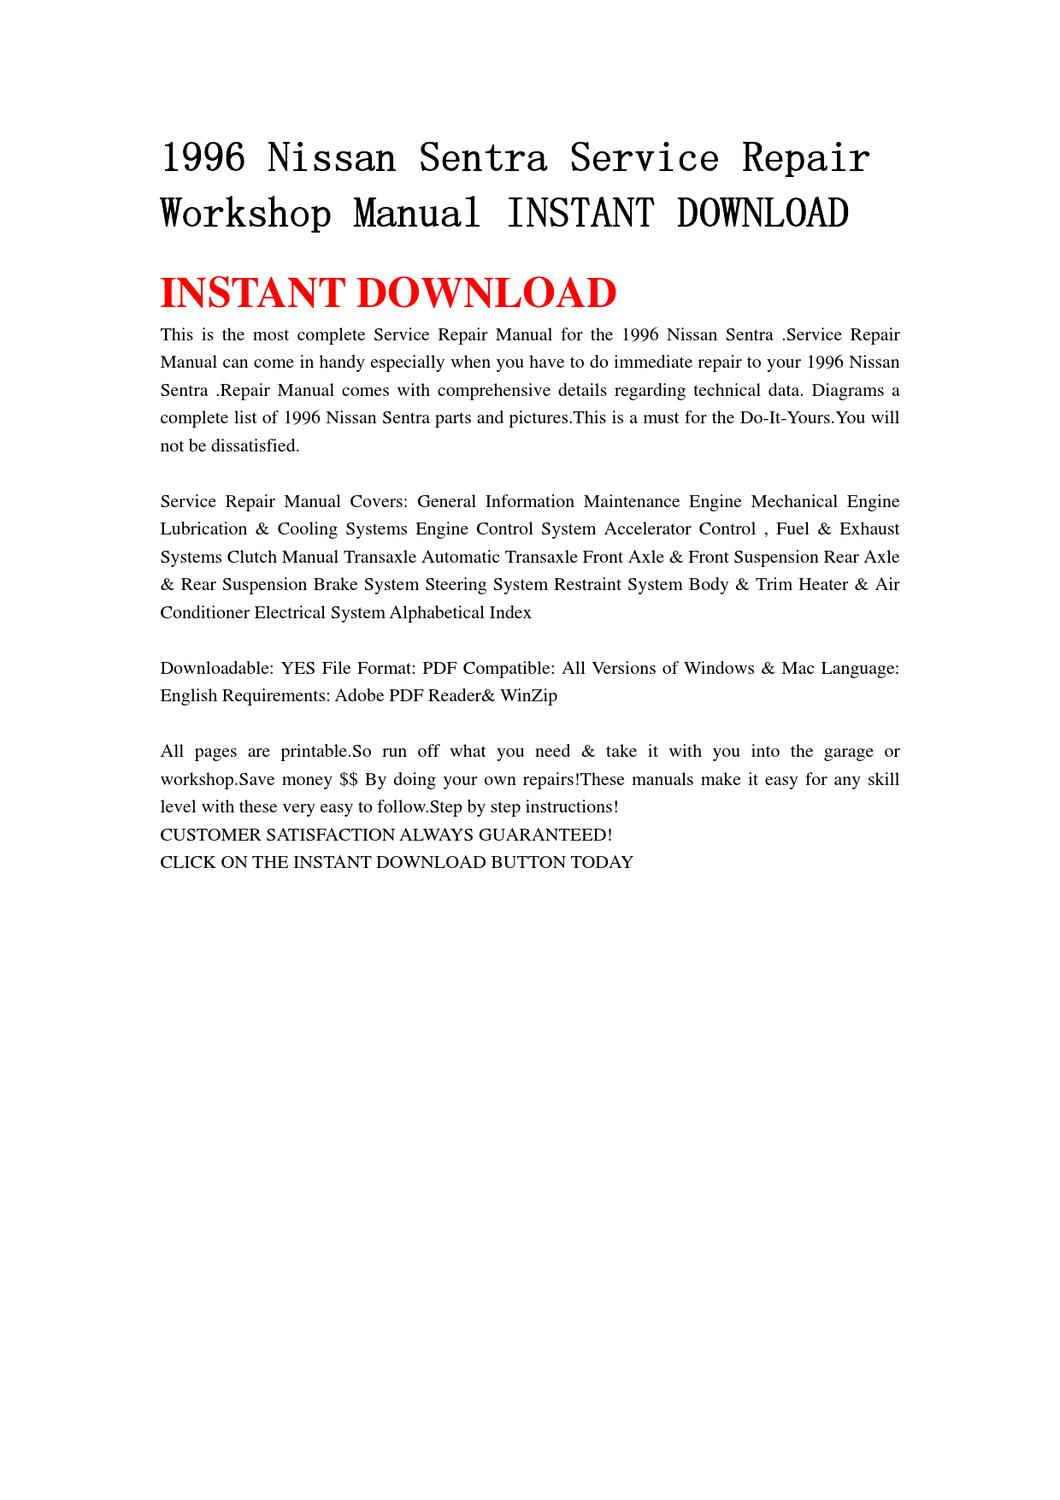 hight resolution of 1996 nissan sentra service repair workshop manual instant download by lin leiww issuu